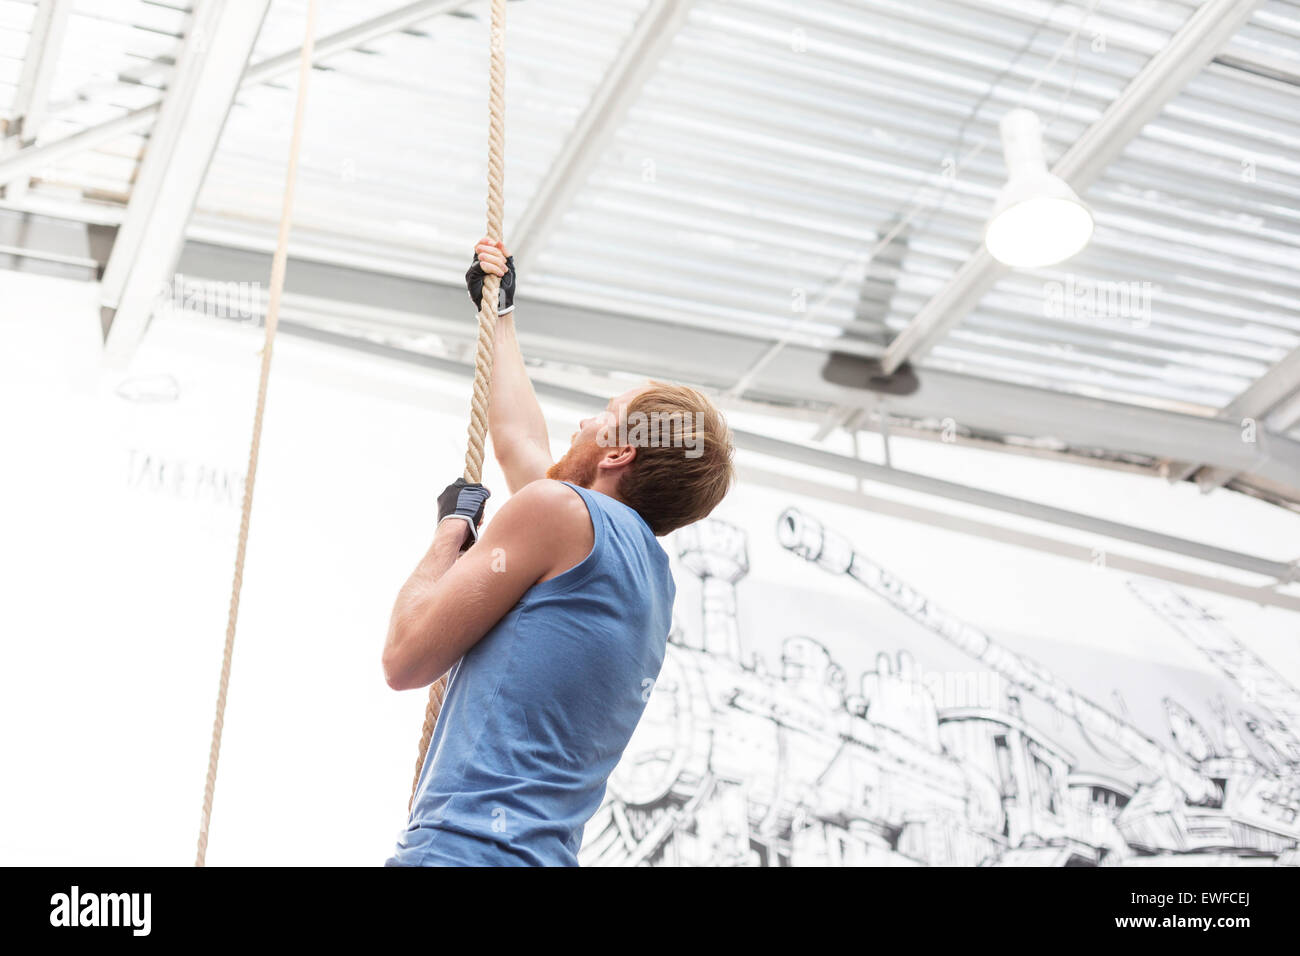 Side view of dedicated man climbing rope in crossfit gym - Stock Image